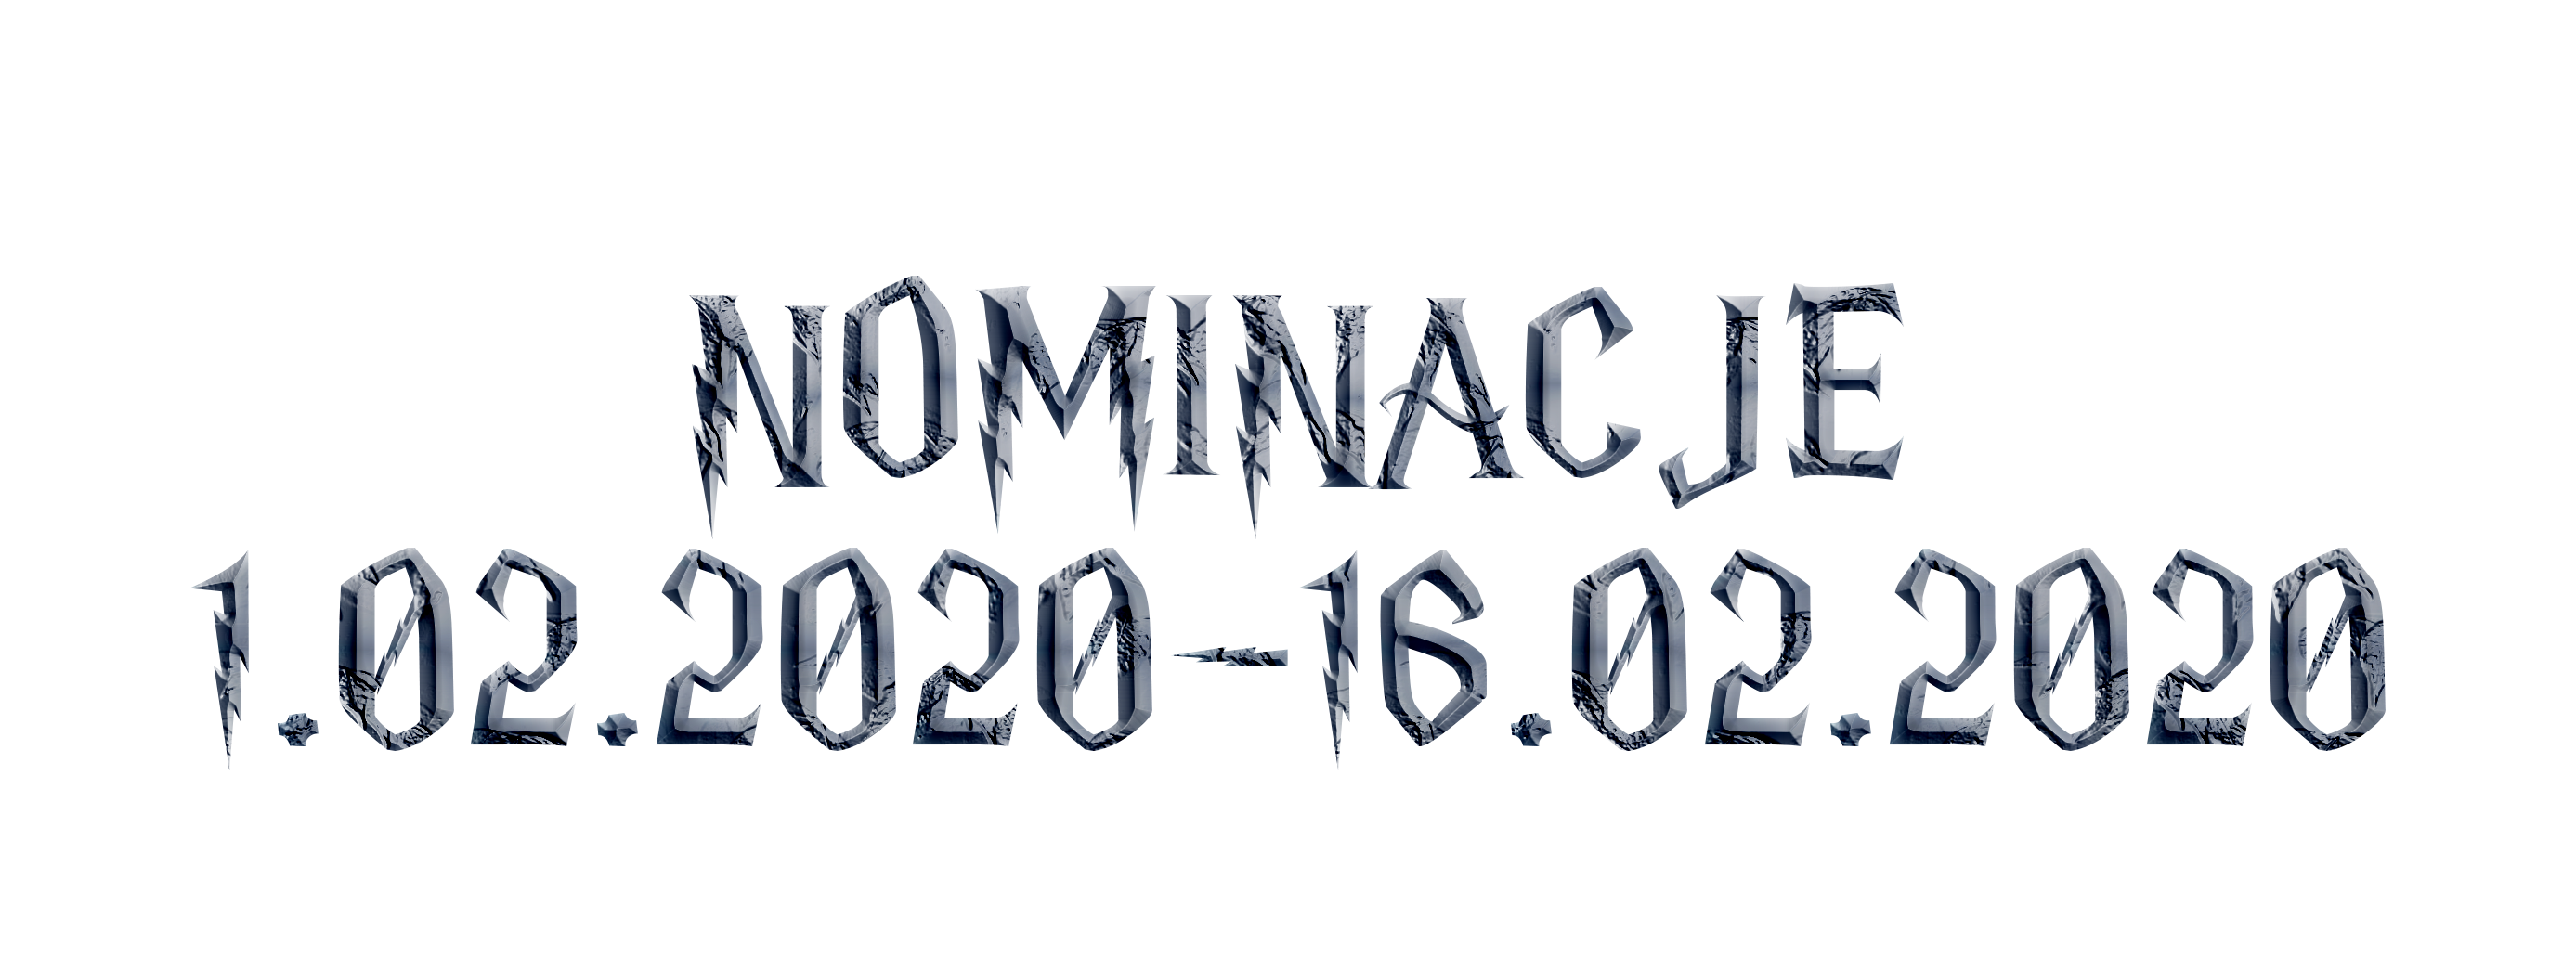 http://www.harry-potter.net.pl/images/articles/awards2020_nominacje.png